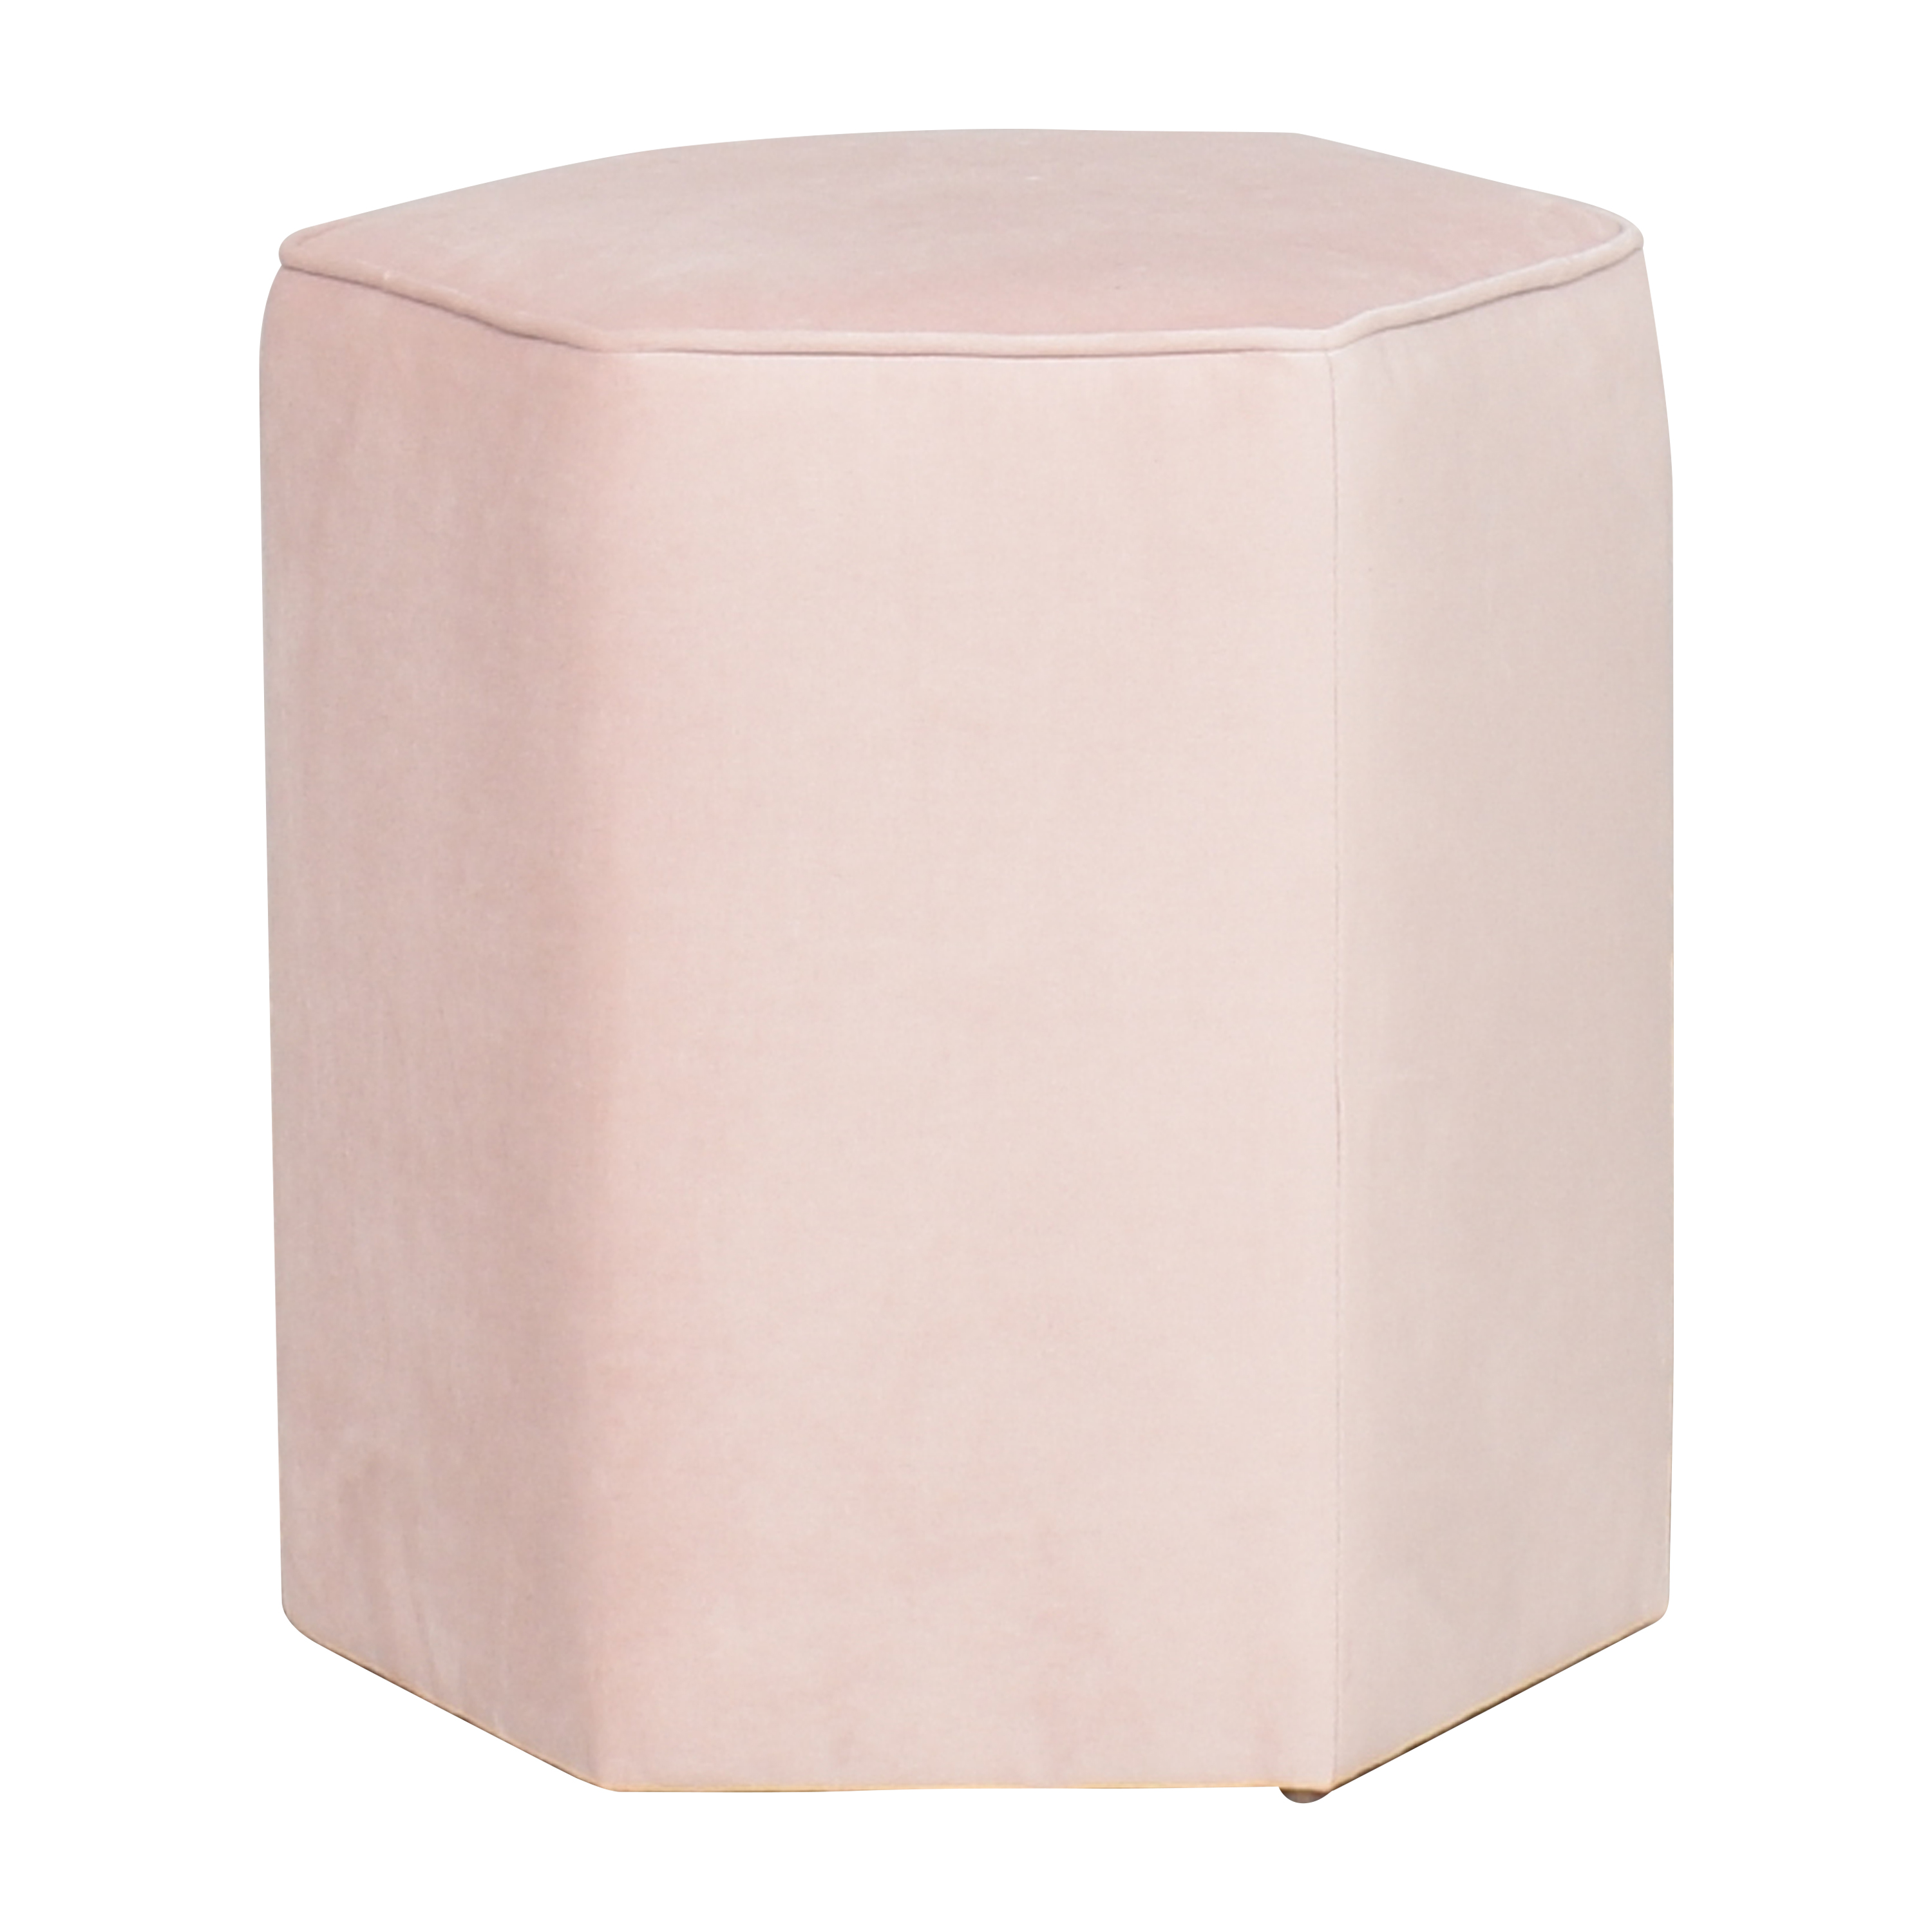 The Inside The Inside Hexagonal Ottoman light pink